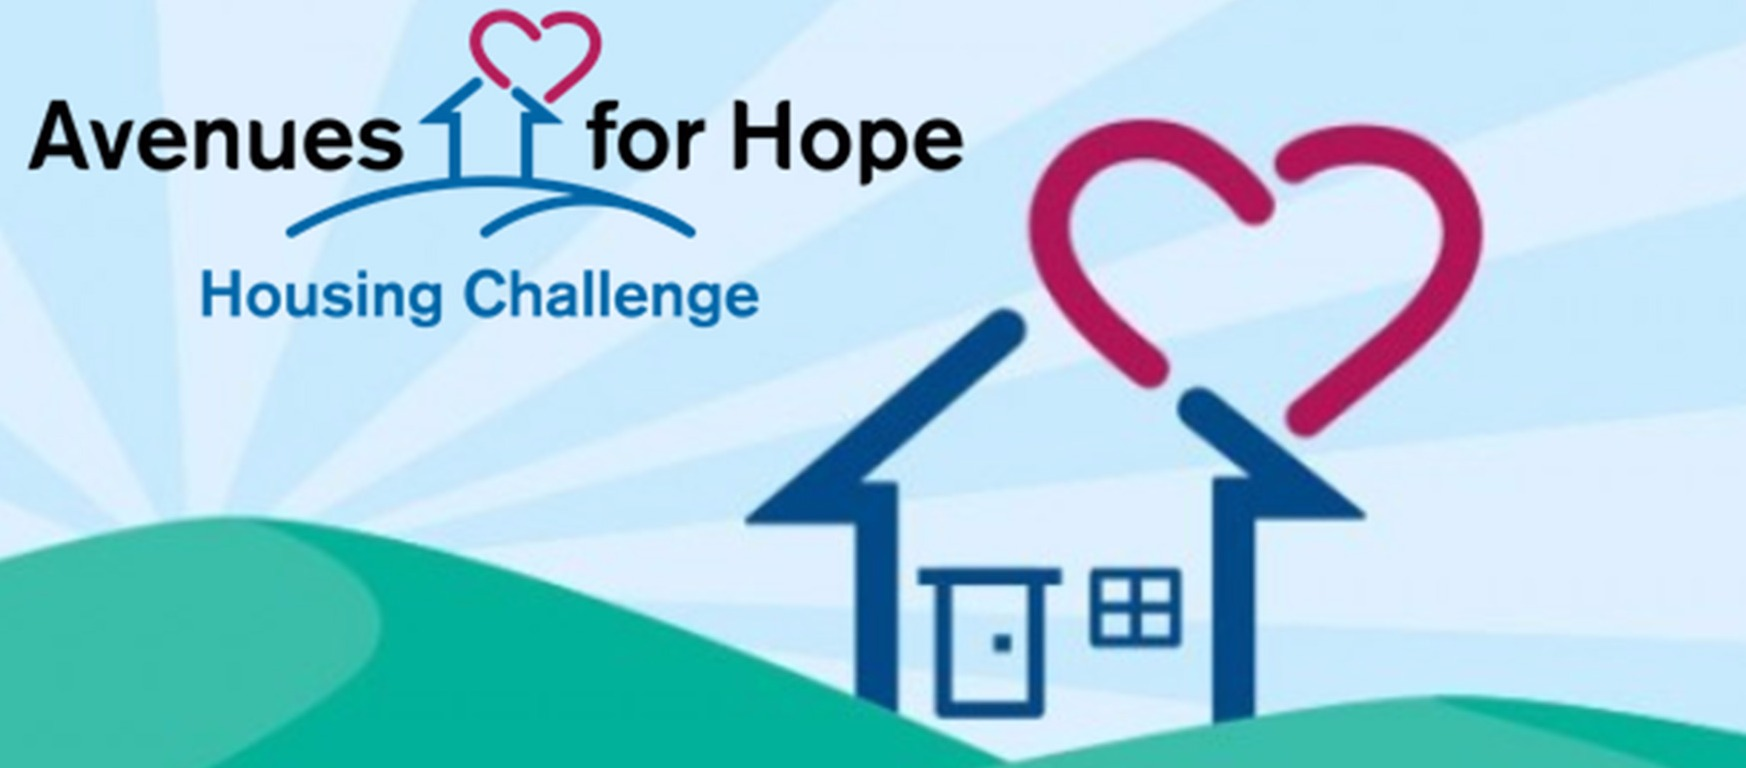 7th Annual Avenues for Hope Housing Challenge